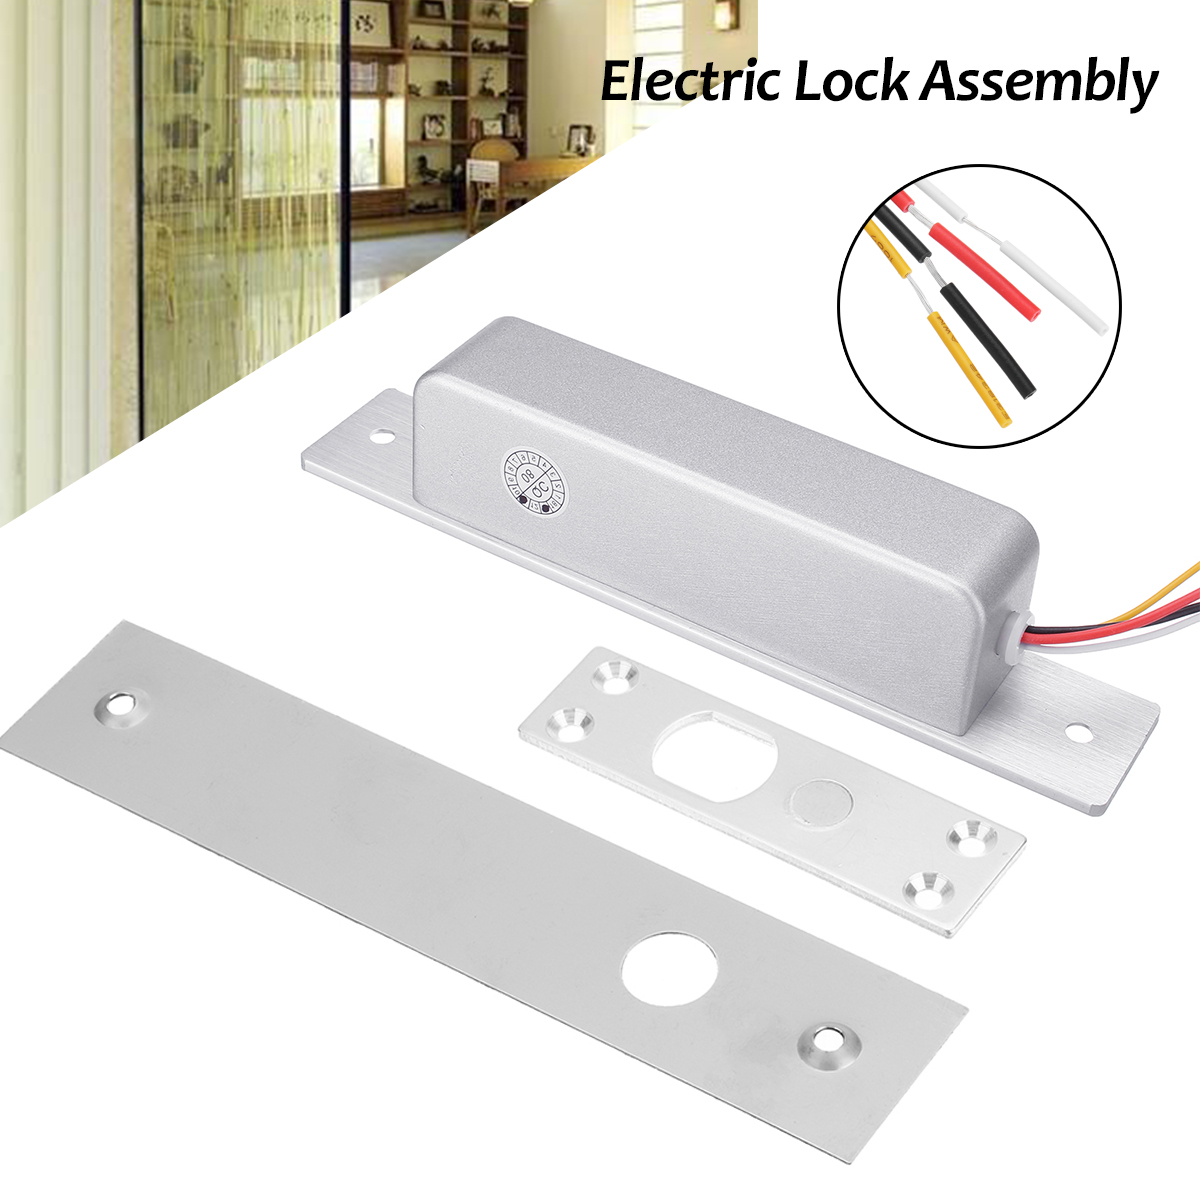 Fail-Safe Electric Magnetic Door Lock Home Security Small Electronic Access Control System Lock Bolt for Locking Door Gate Hotel lpsecurity gate door electric magnetic lock drop bolt strike access control system power supply with box cabinet 12v 5a